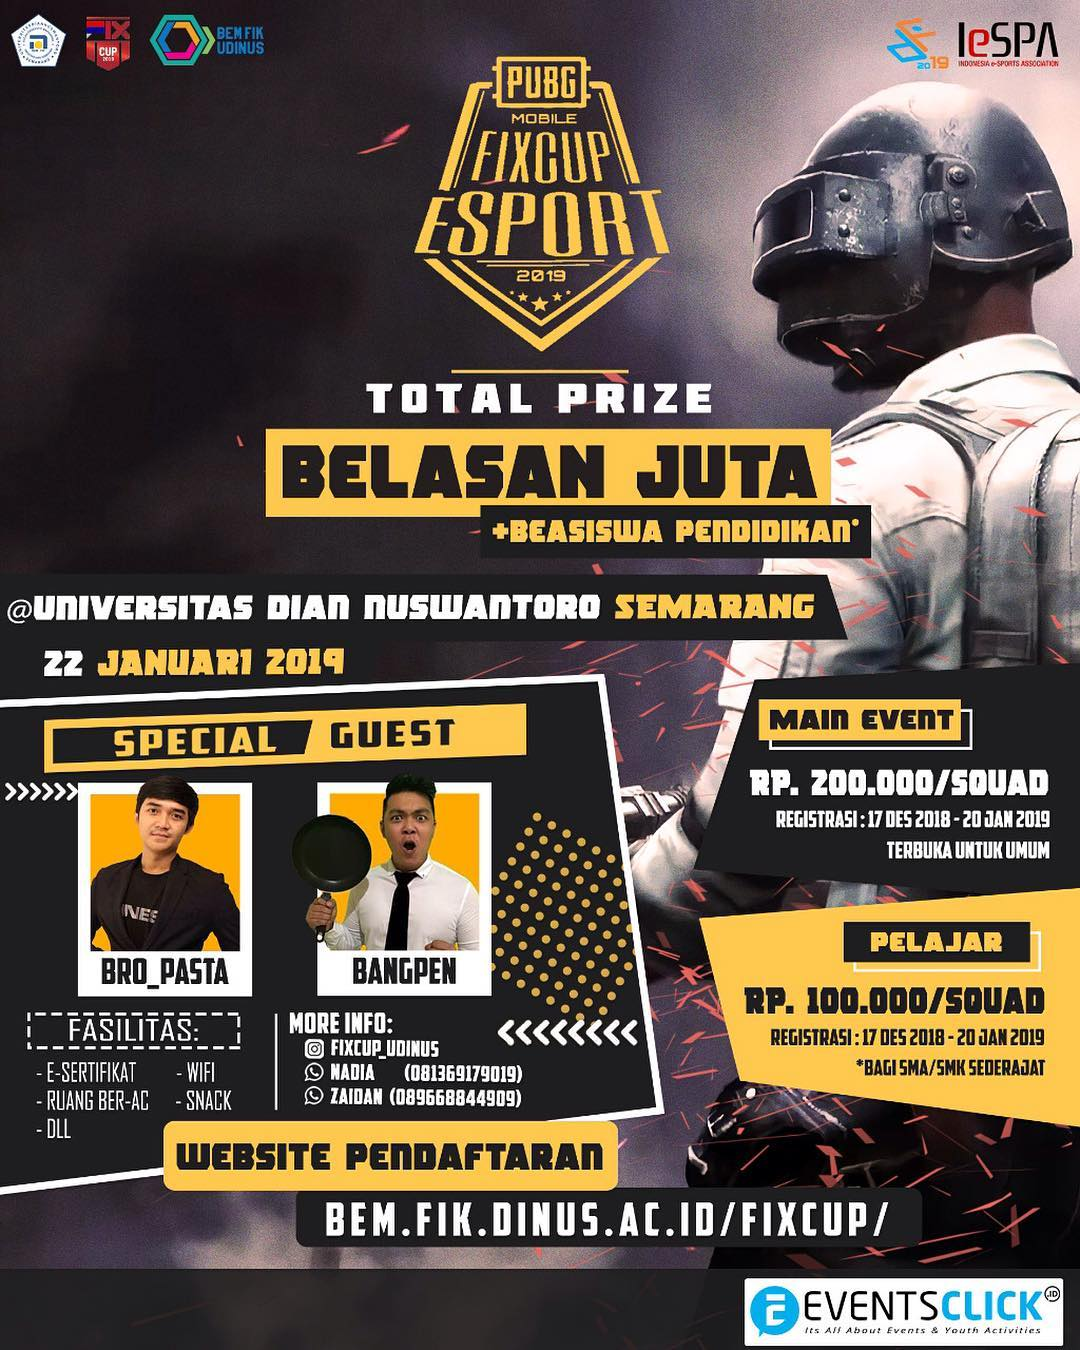 Event Semarang - Pubg Mobile Fixcup Esport Competition 2019